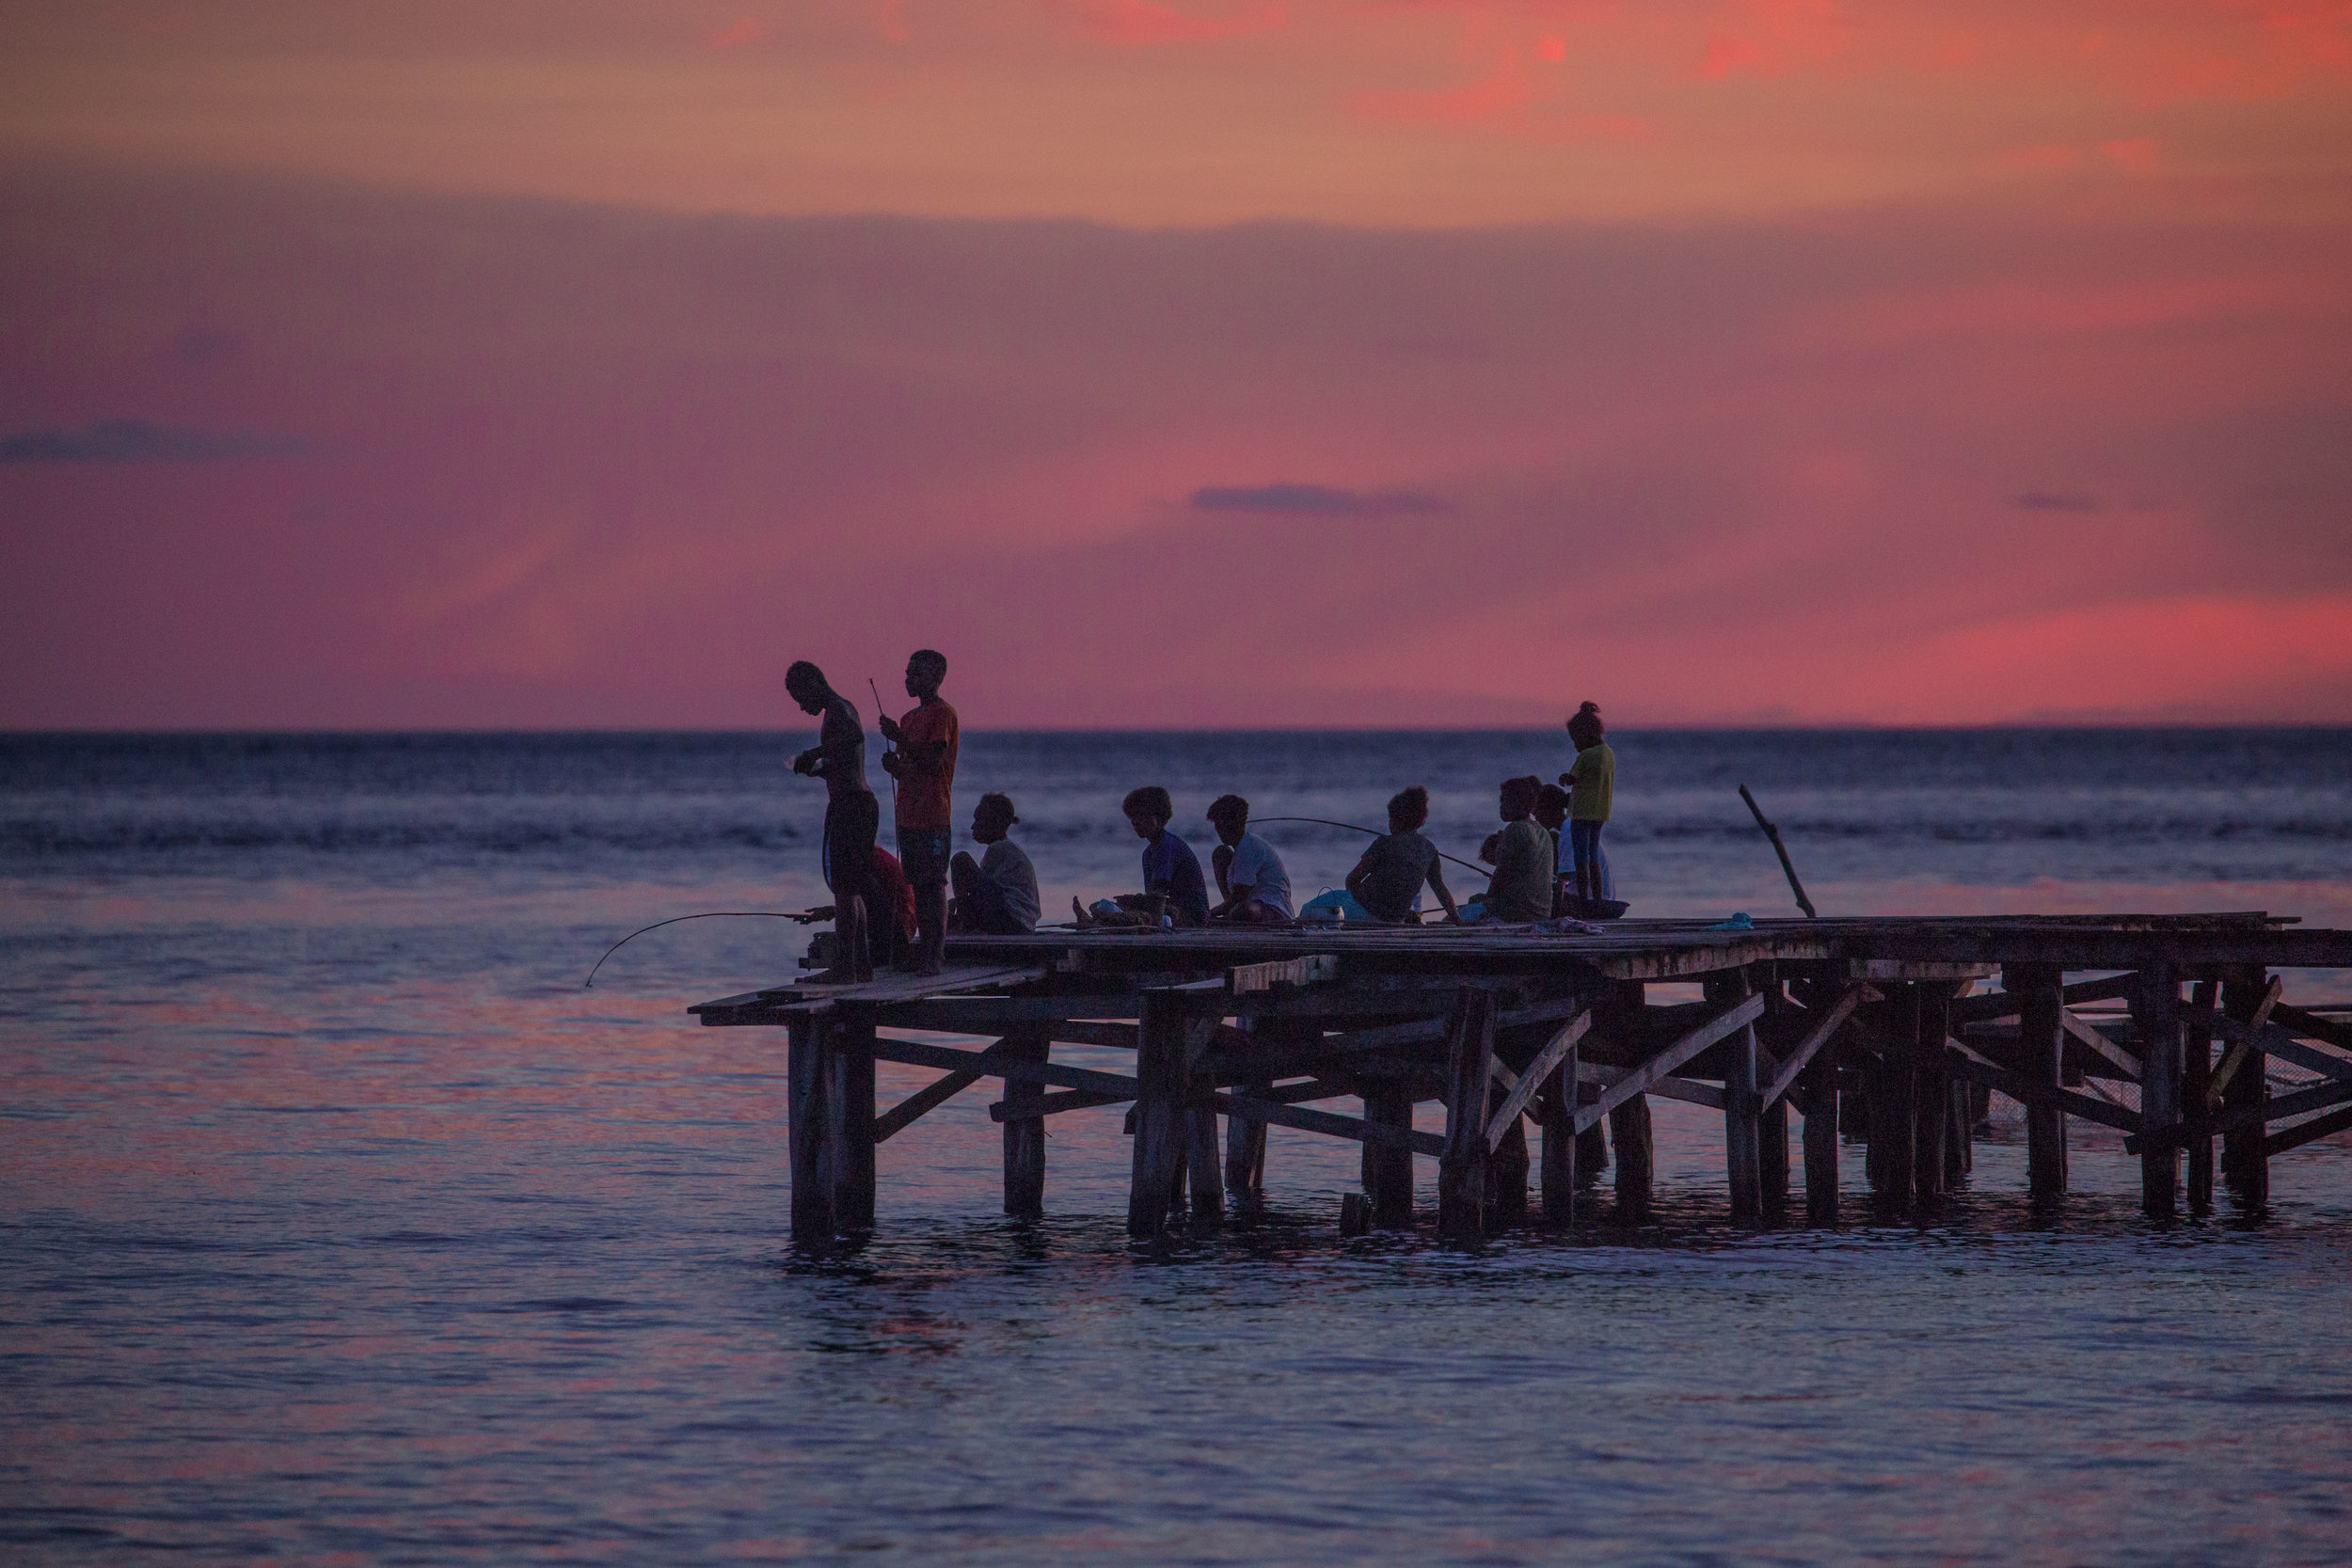 jetty in Sawinggrai, gam island - As we were saying goodbye to the elders of the village and to our guide, the horizon had turned a bright pink and orange, reminding us of how much we were going to miss this remote paradise at the tip of the Bird's Head Peninsula in the West Papua province. Meanwhile the kids and teenagers in the village were out playing soccer, going in for a dip, fishing and having fun. People have lived in Raja Ampat for a long time in balance with the nature around them. Their vision and traditions protected the biodiversity of the area while at the same time providing for their needs. Although much has changed in the last two centuries, some sense of balance is returning to the region, and economic alternatives like responsible tourism can help communities benefit financially from the protection of nature.